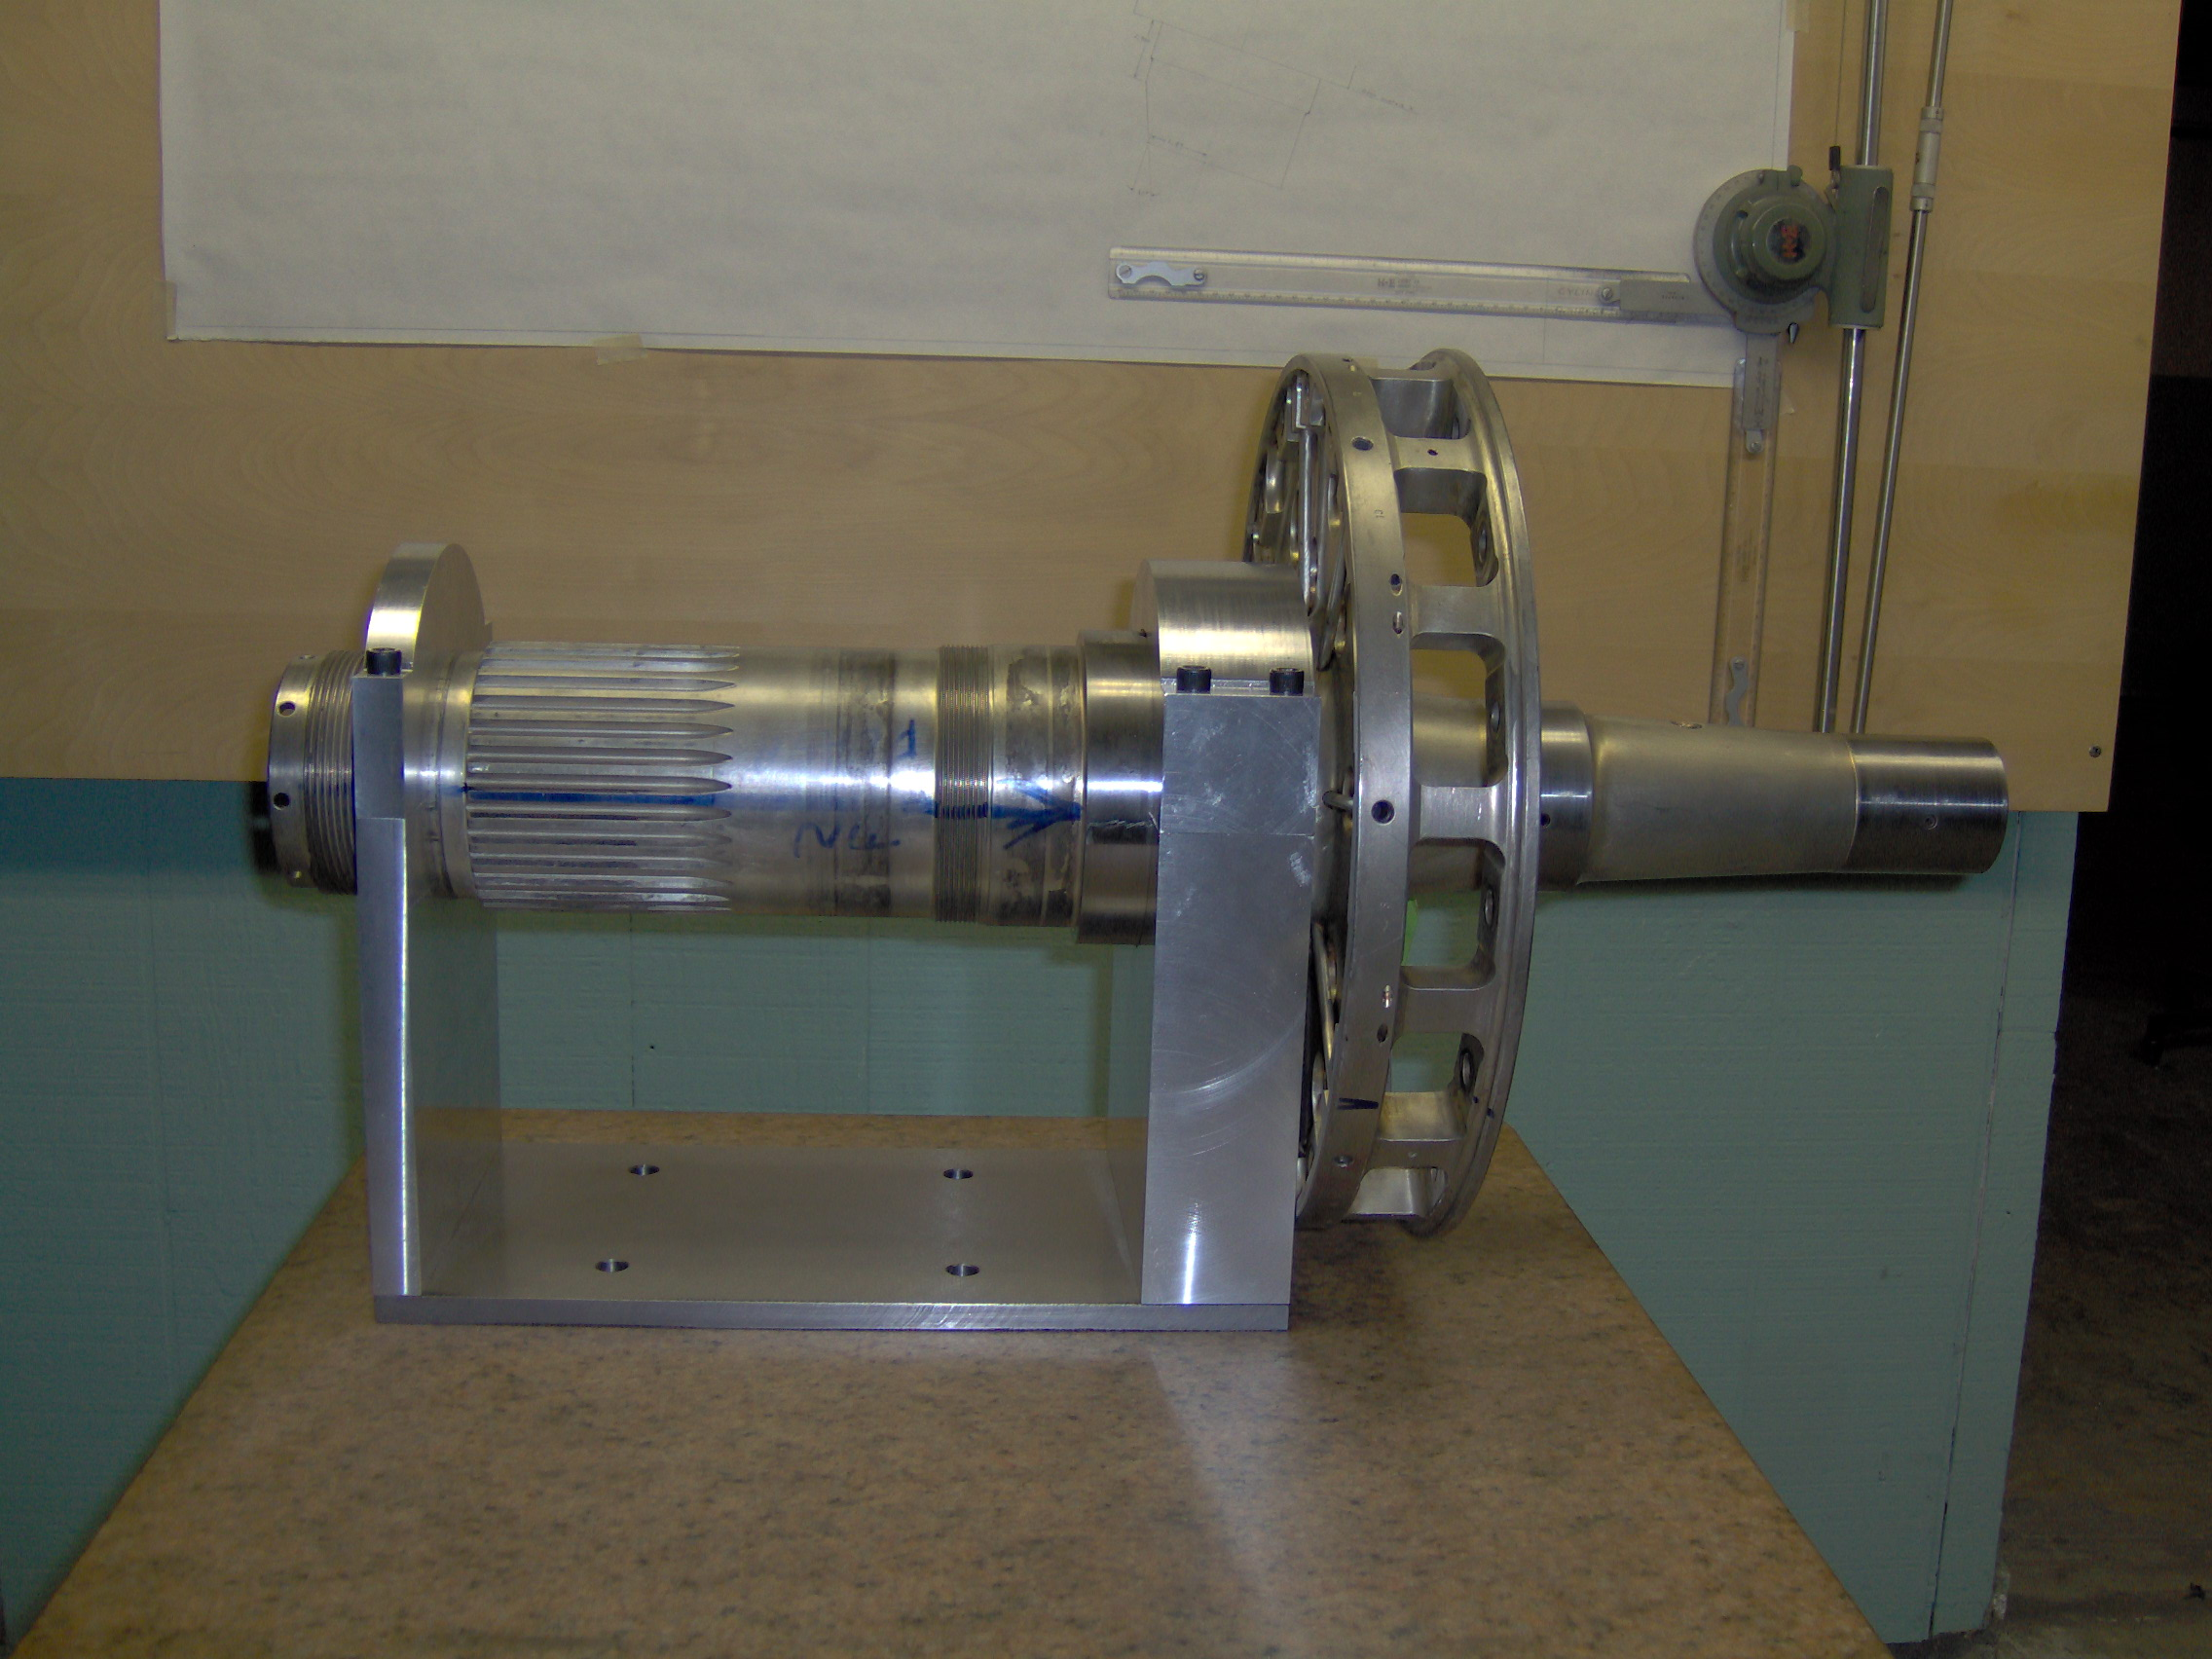 Fixture for R2800 Propeller Shaft rework